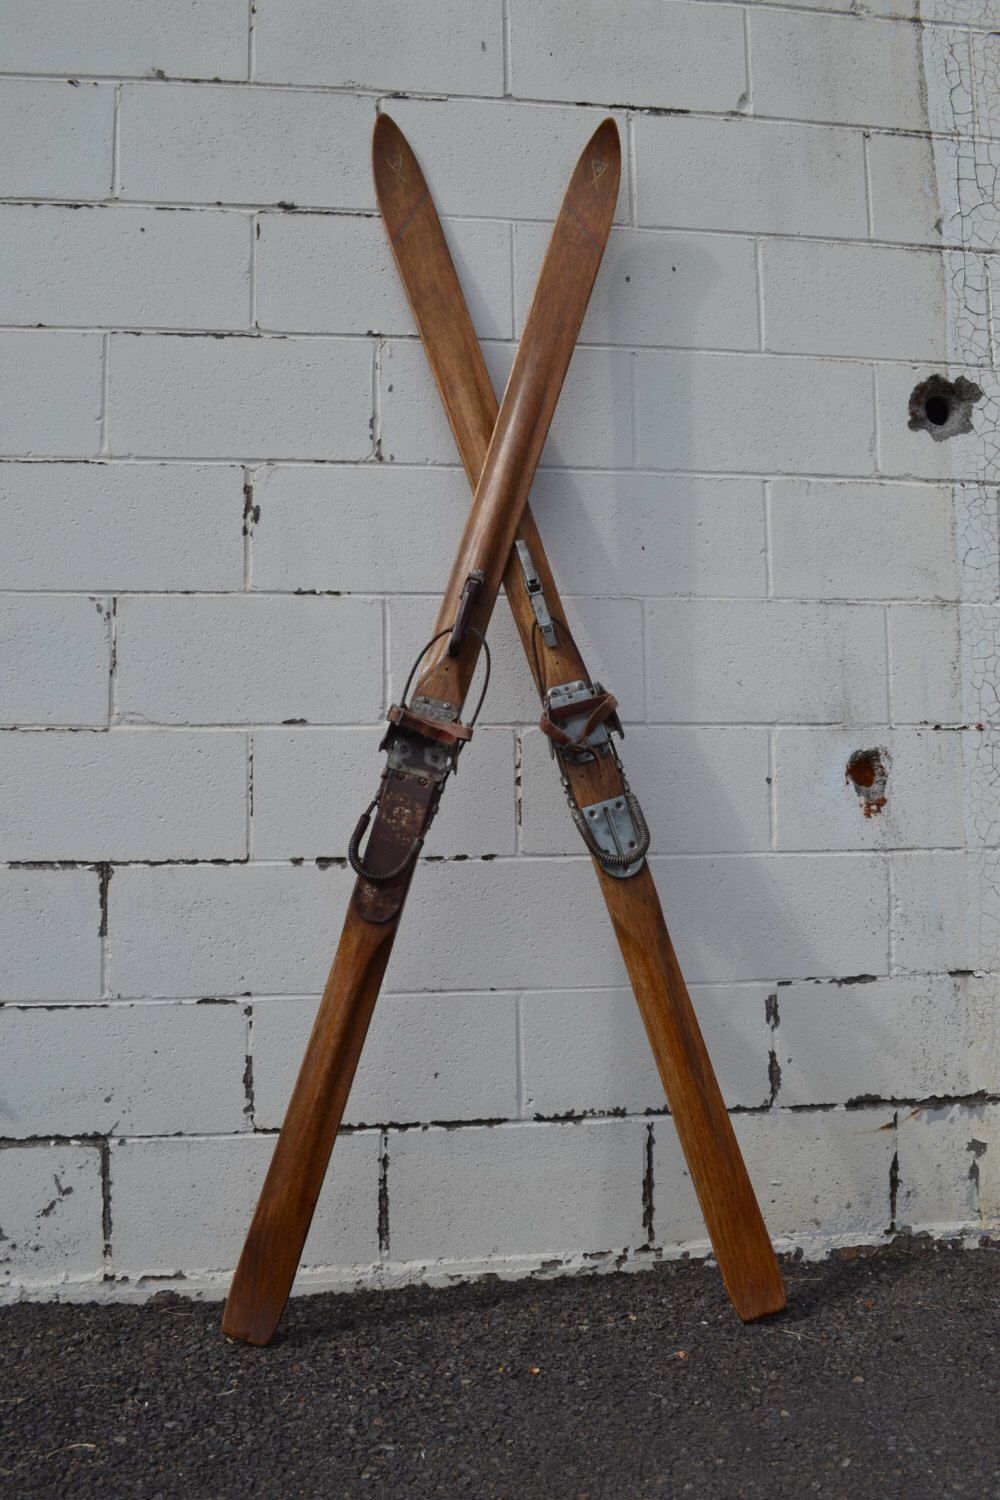 Vintage Wooden Snow Ski Antique Mercury Wooden Skis Cross